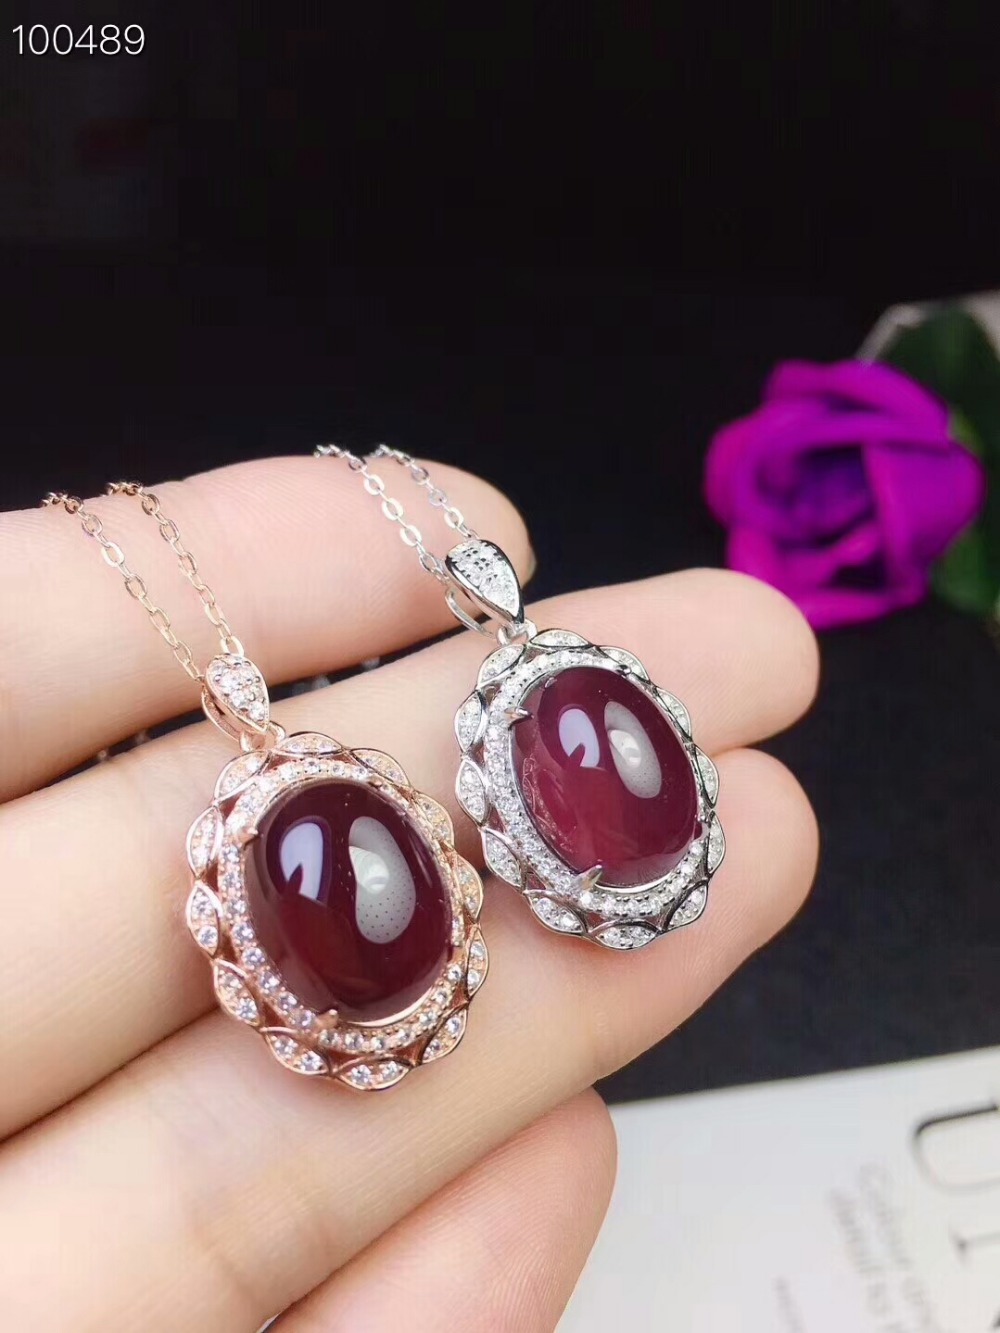 [MeiBaPJ]Real Natural Garnet Big Pendant Necklace with Certificate 925 Pure Silver Red Stone Fine Charm Jewelry for Women [meibapj]real natural diopside gemstone pendant necklace with certificate 925 pure silver green stone fine jewelry for women